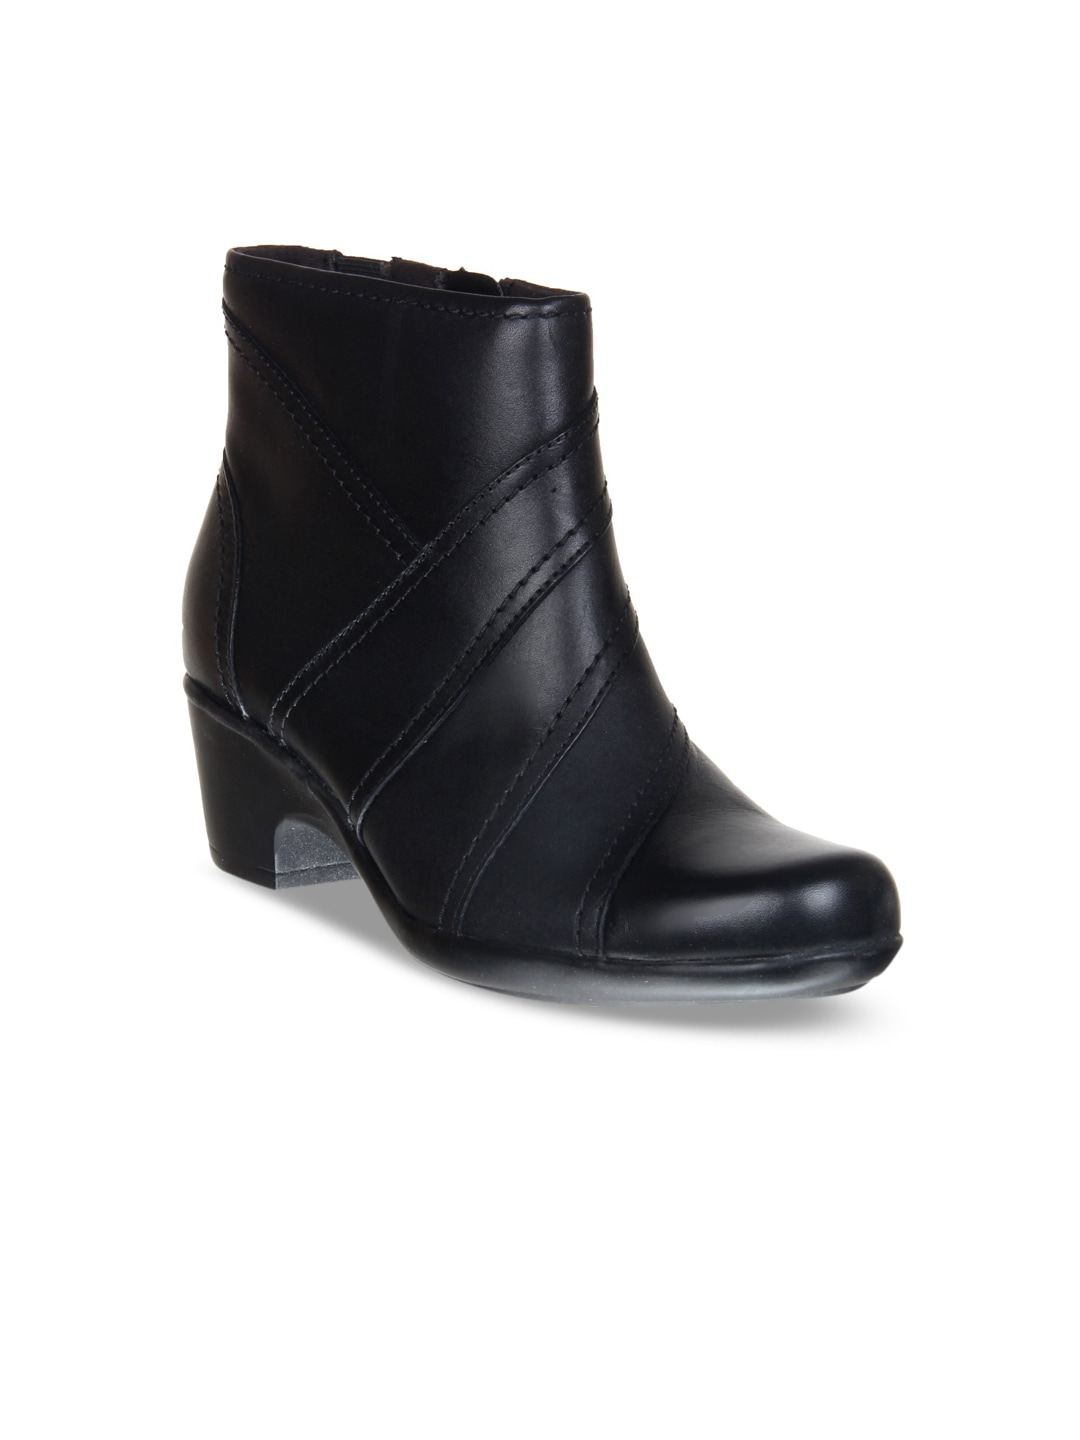 Clarks Women Black Leather Mid Top Heeled Boots image